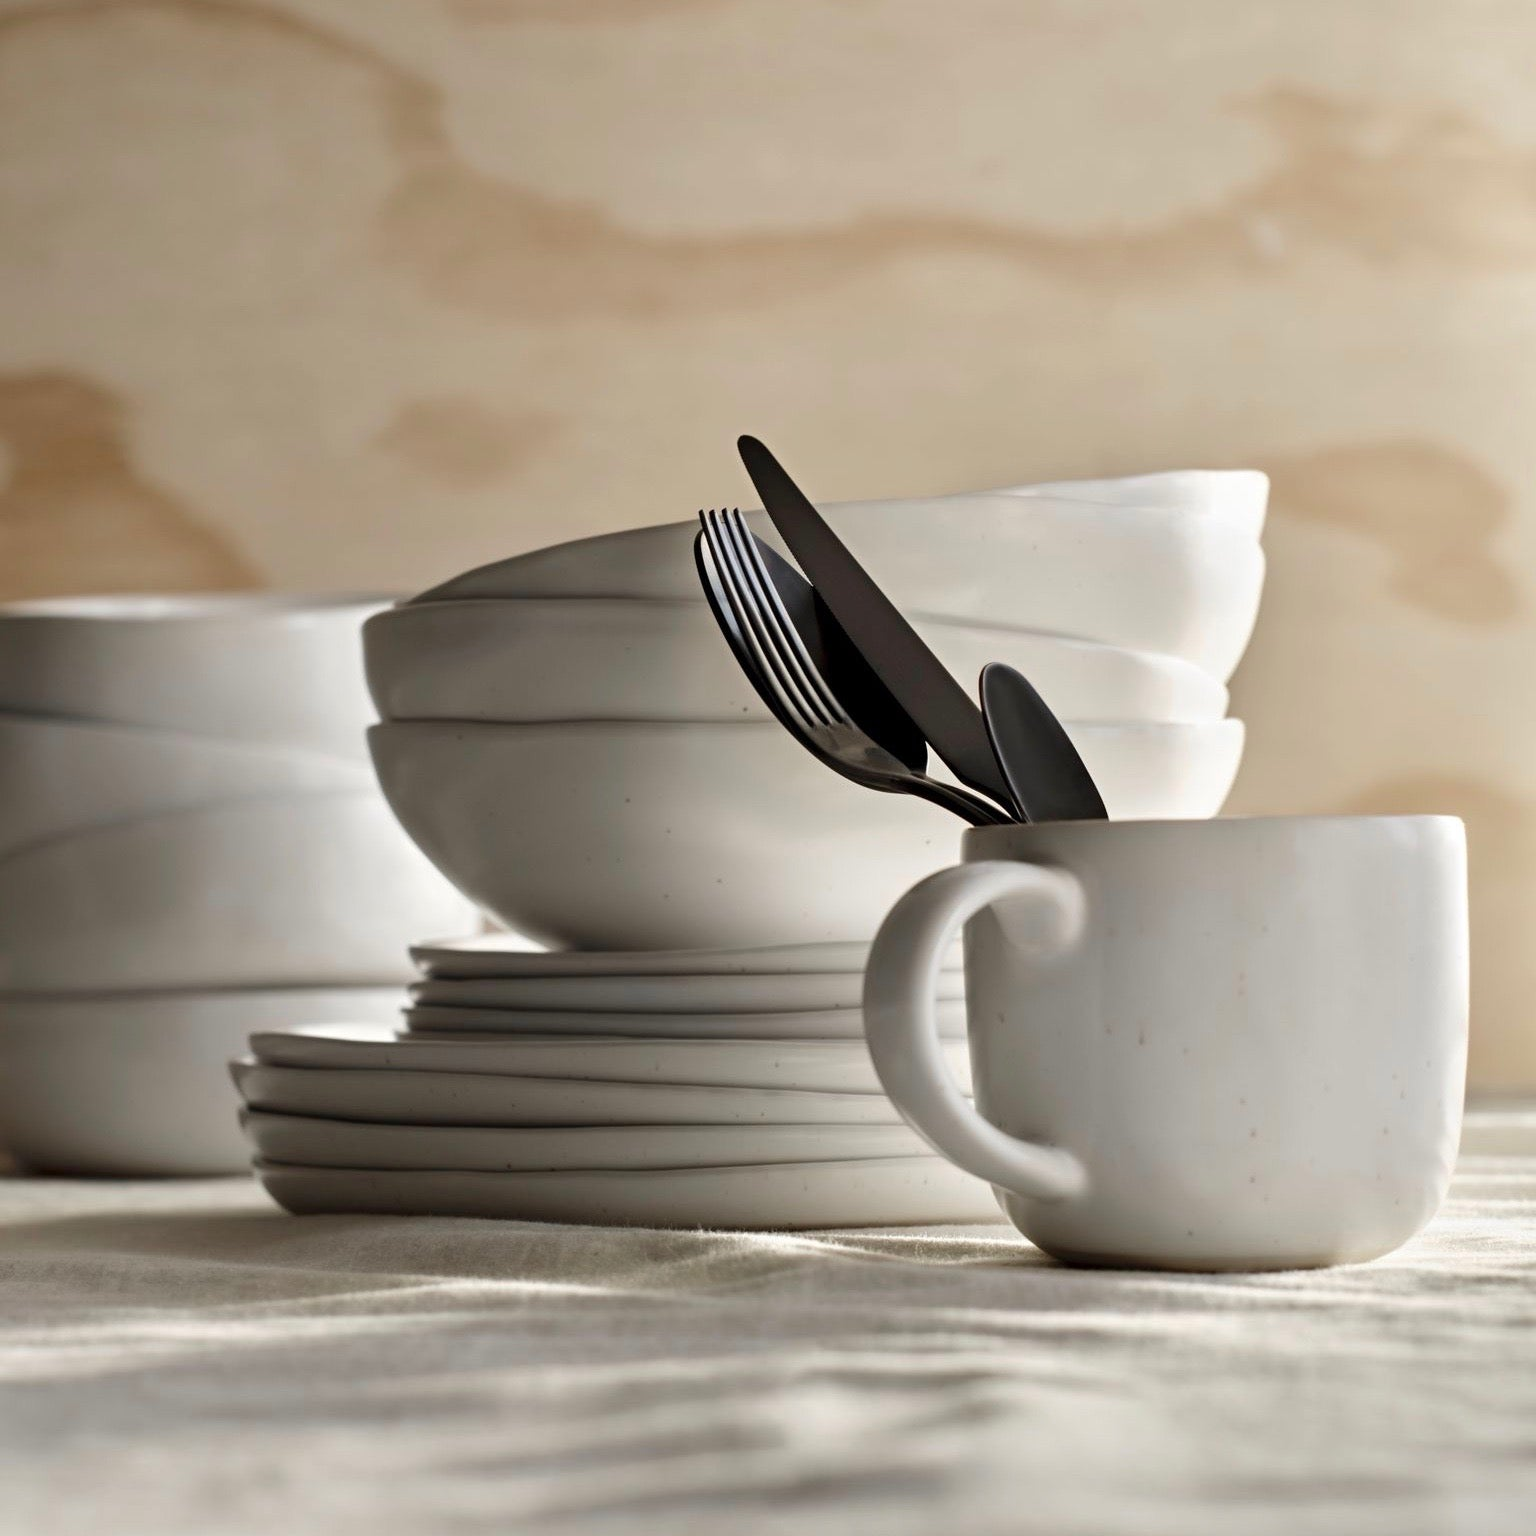 A stack of speckled white plates and bowls in the background of a mug stacked with some flatware.